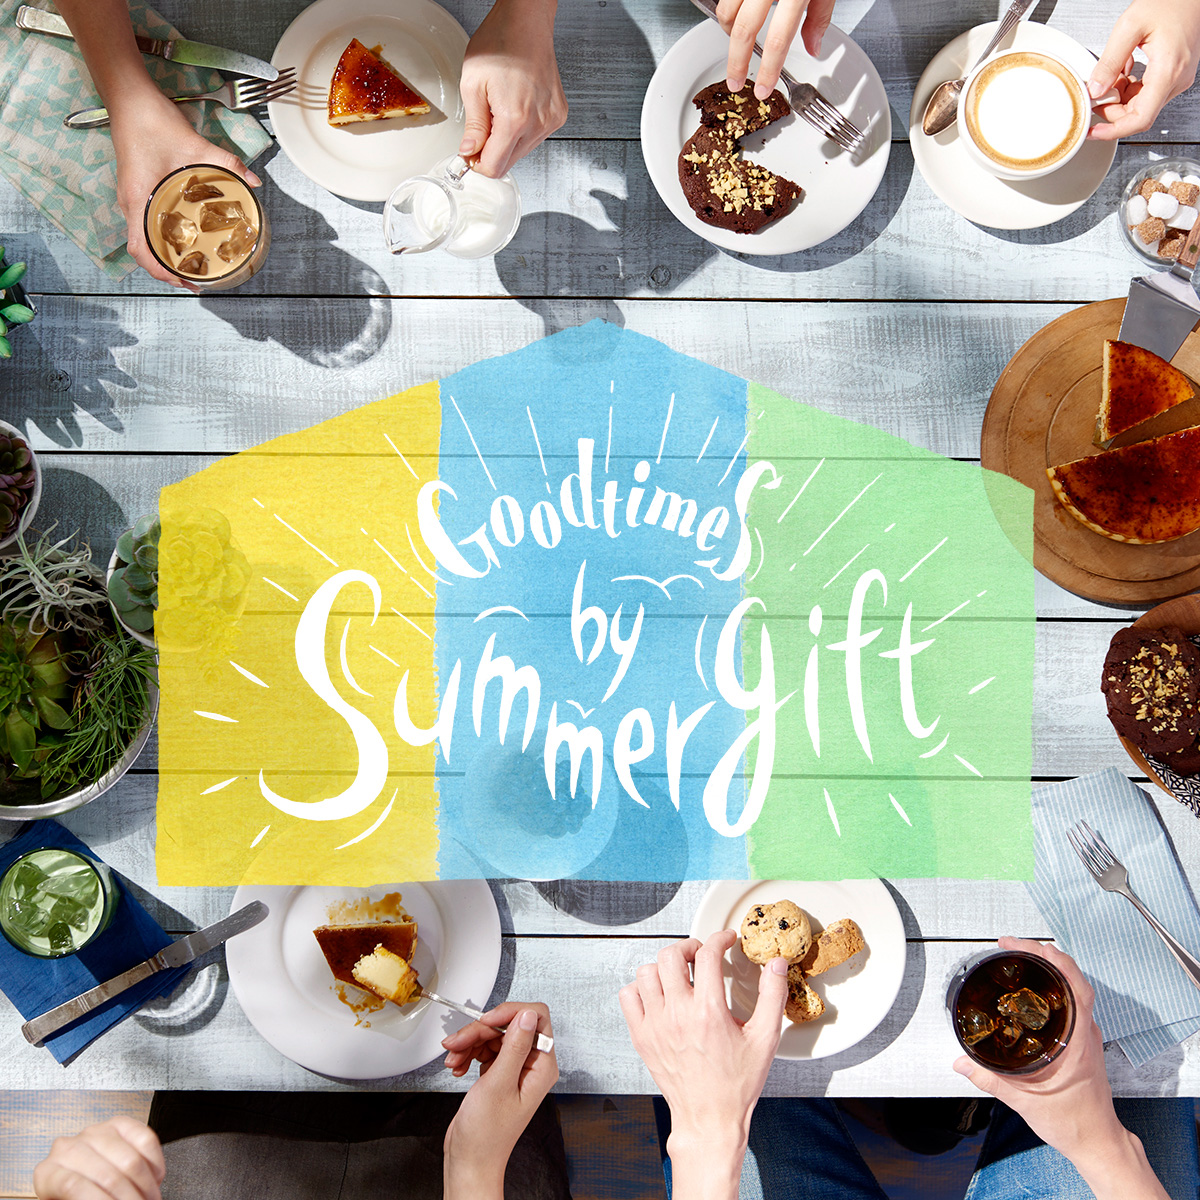 Goodtimes by Summer Gift